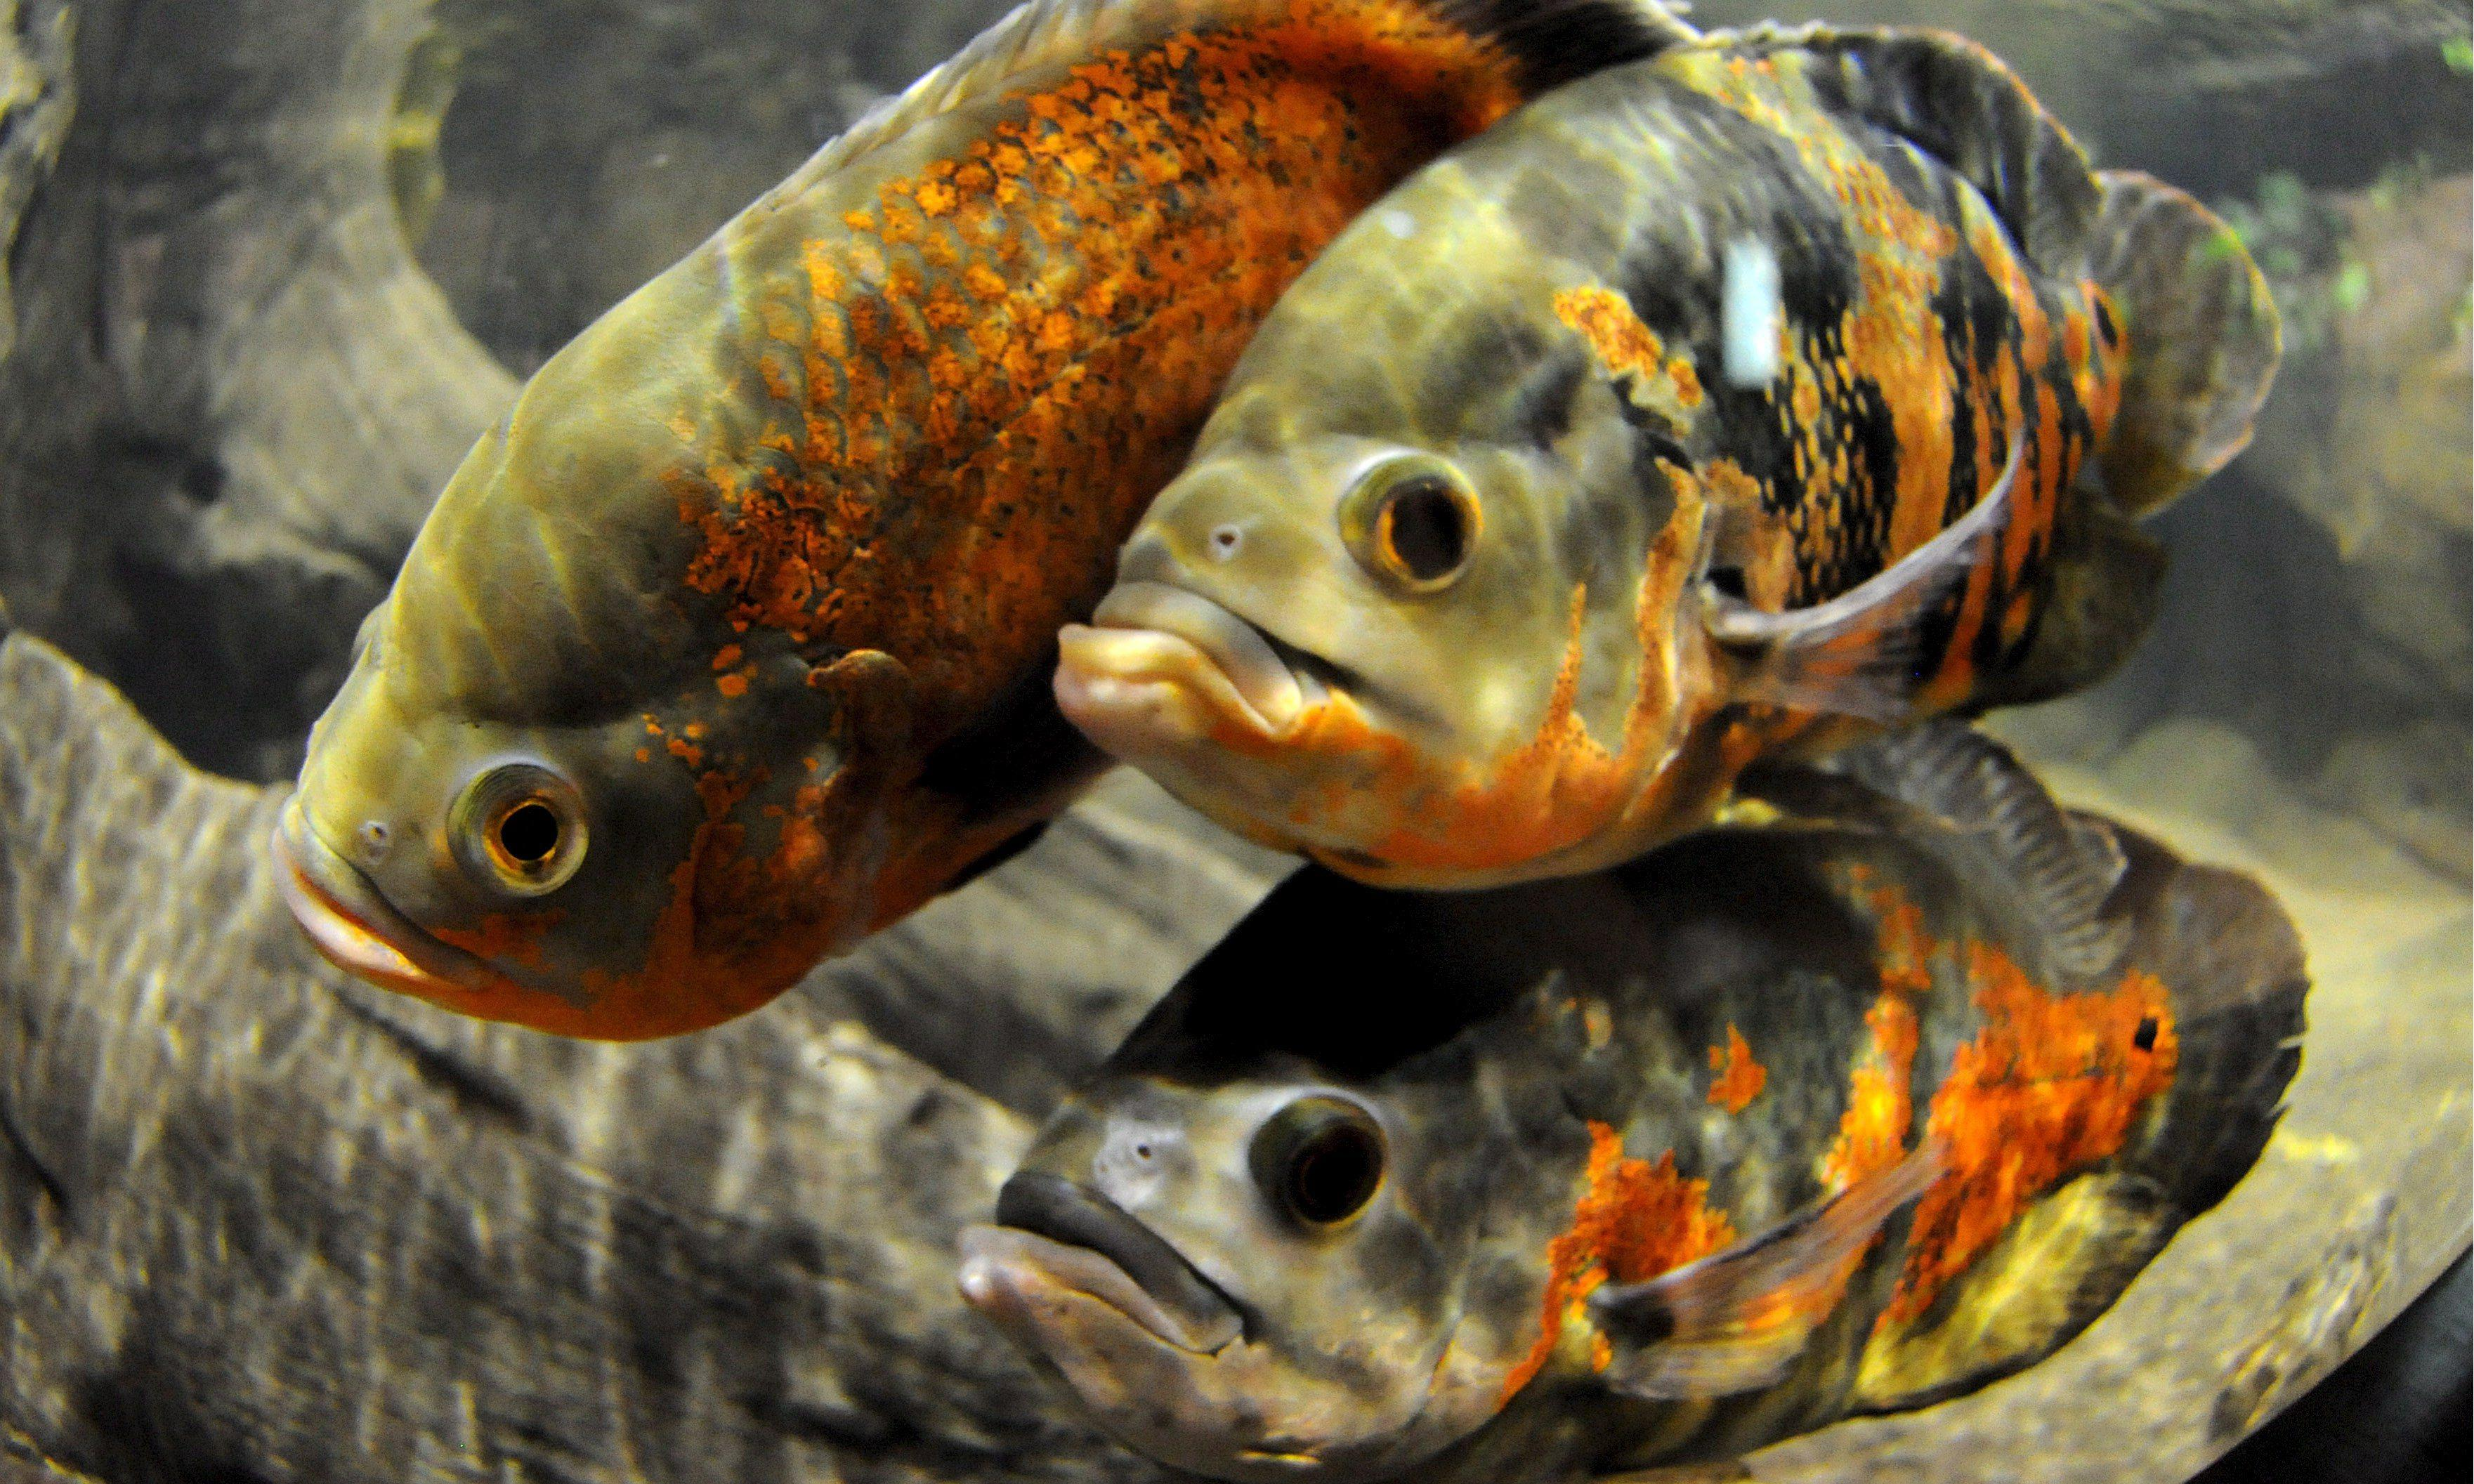 Lovelorn fish have gloomier outlook, study finds